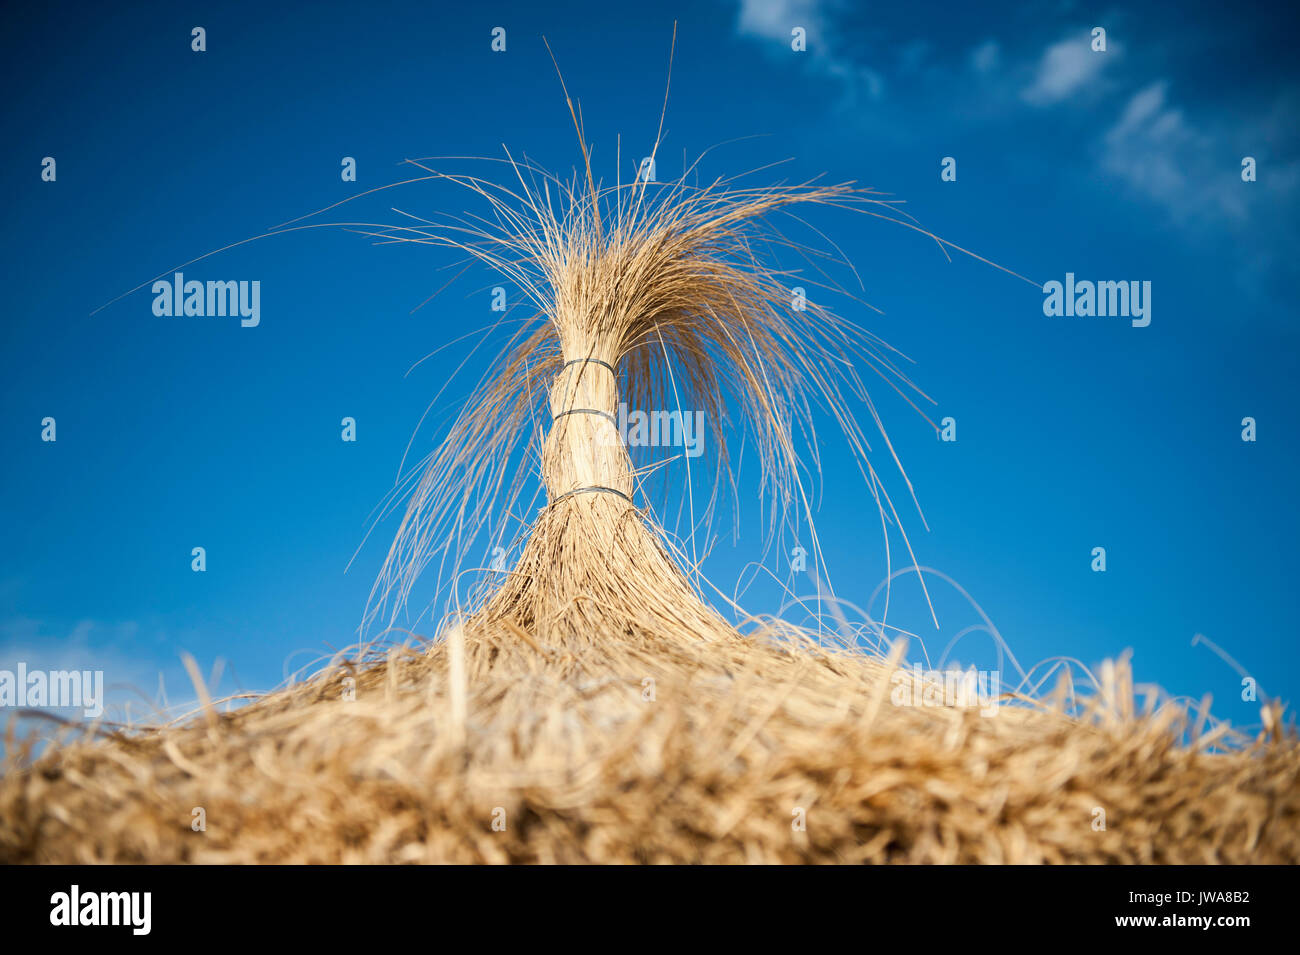 Close-up of a Starw Parasol - Stock Image